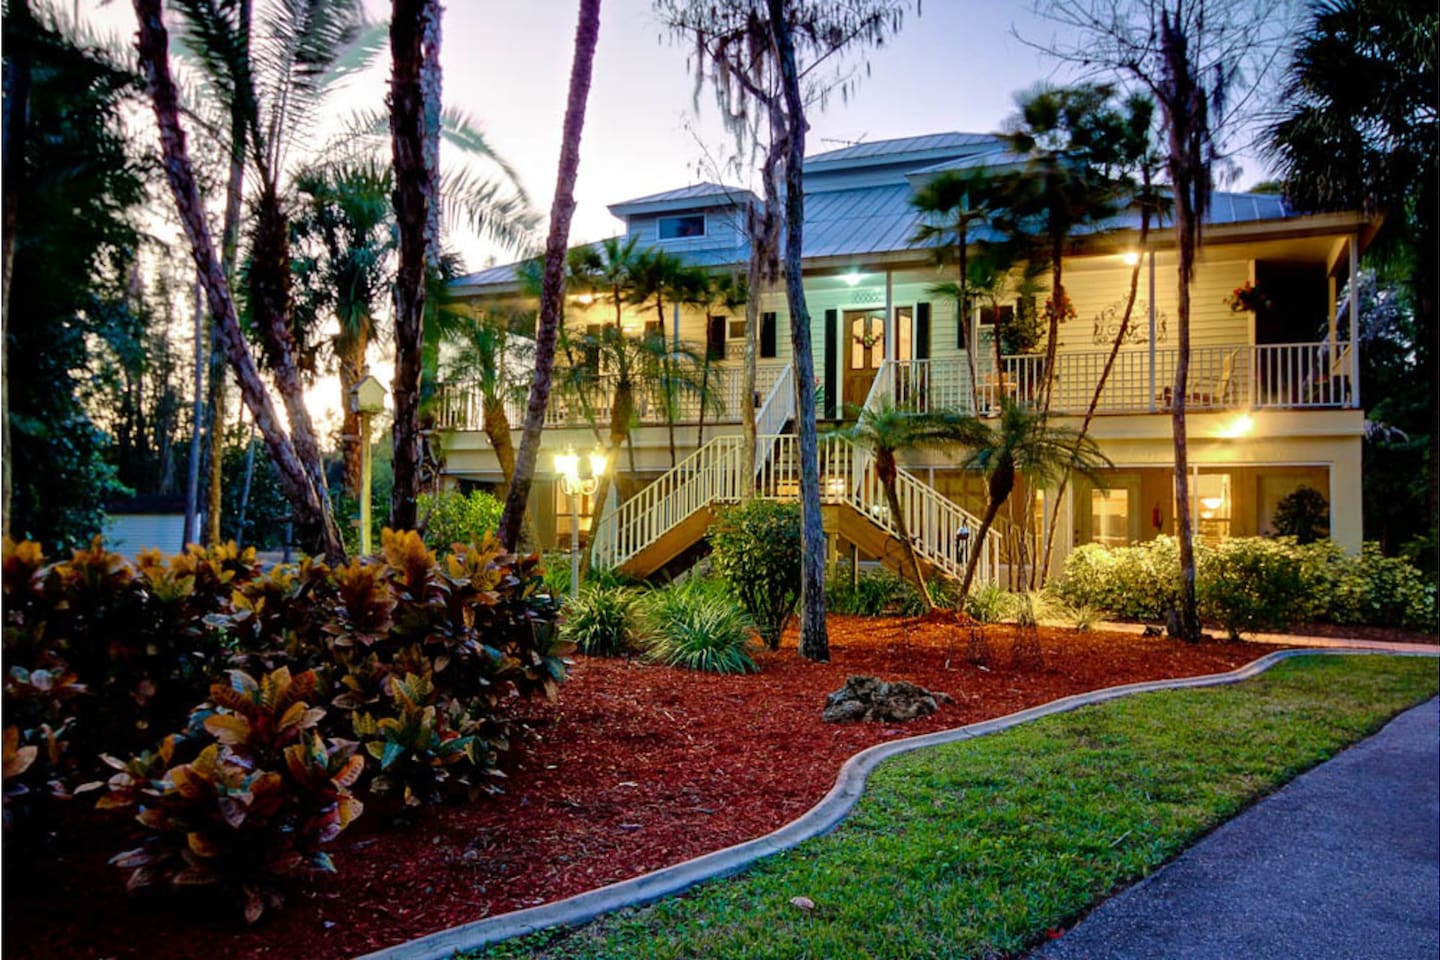 Key West Style, Second Floor Penthouse with wrap around porch